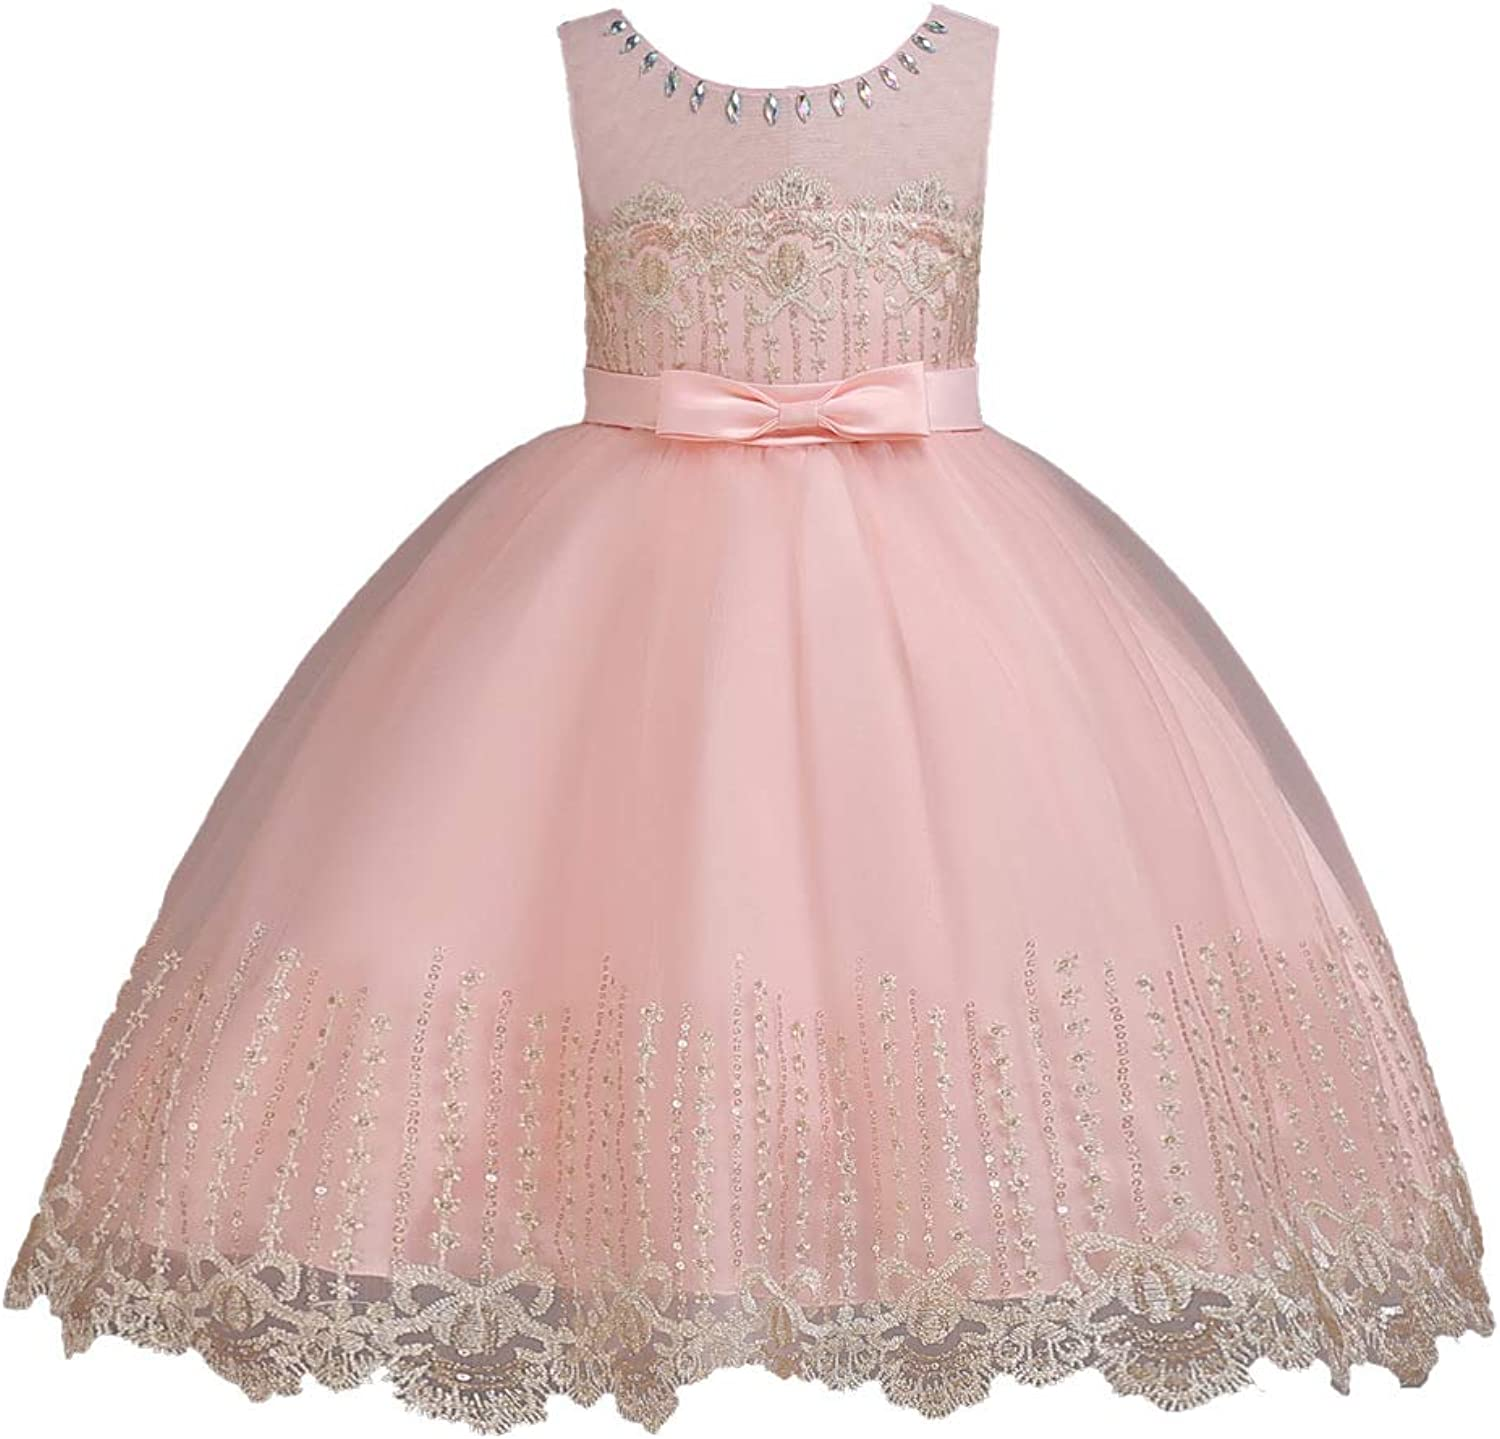 GIFT ZHIZHUXIA Wedding Bridesmaid Birthday Evening Party Girls Sleeveless Dress Bowknot Embroidered Design Kids Princess Puffy Dresses Christmas Party Dress props ( color   PINK , Size   100CM )